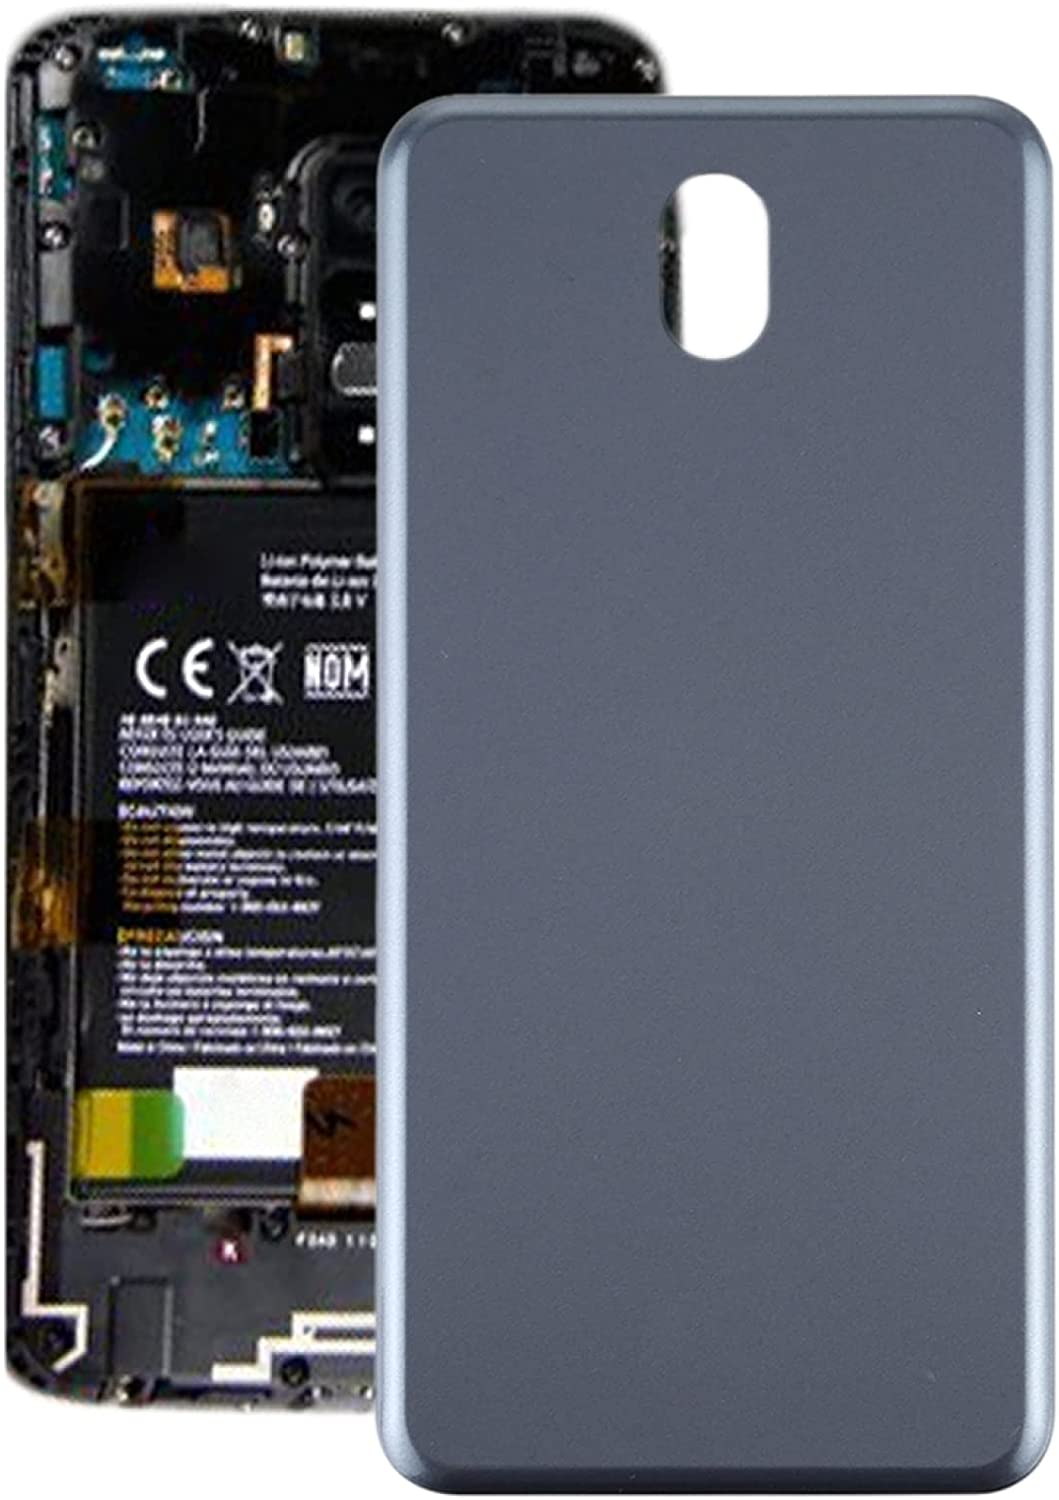 tanjingz Battery Back Cover for LG 2019 X320 L K30 Limited price sale X2 Special price for a limited time